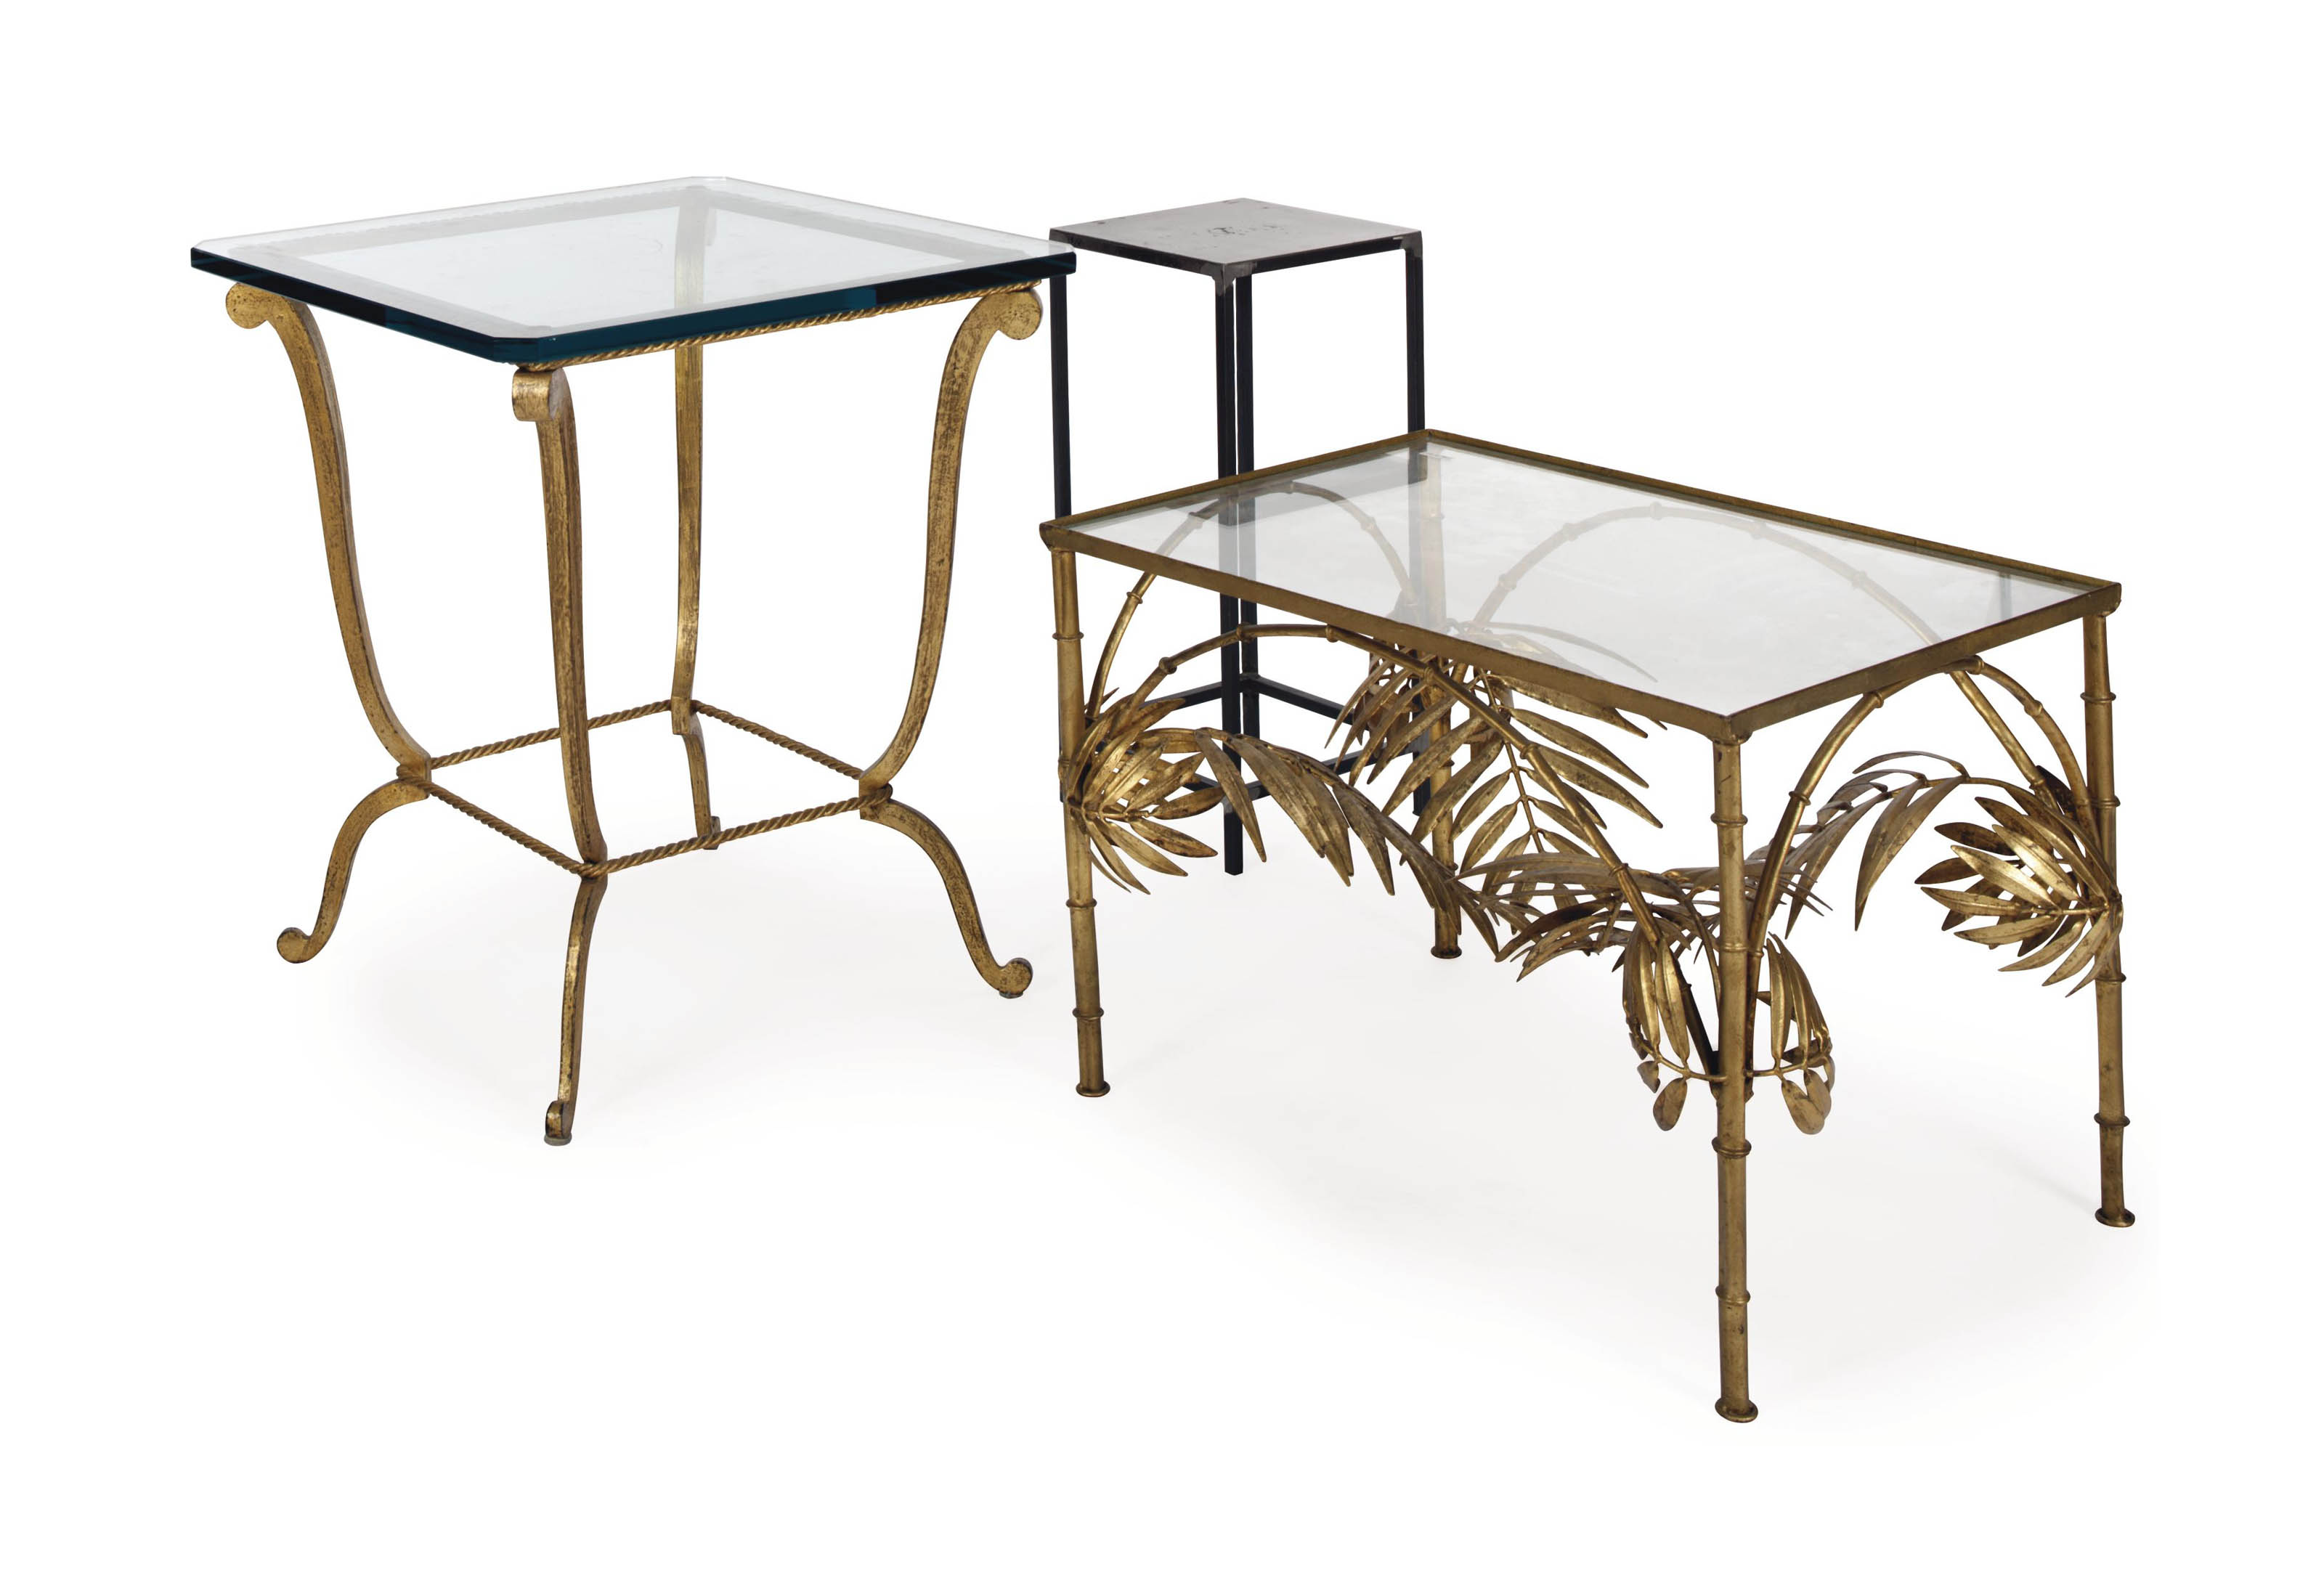 TWO GILT-METAL AND GLASS-TOP T